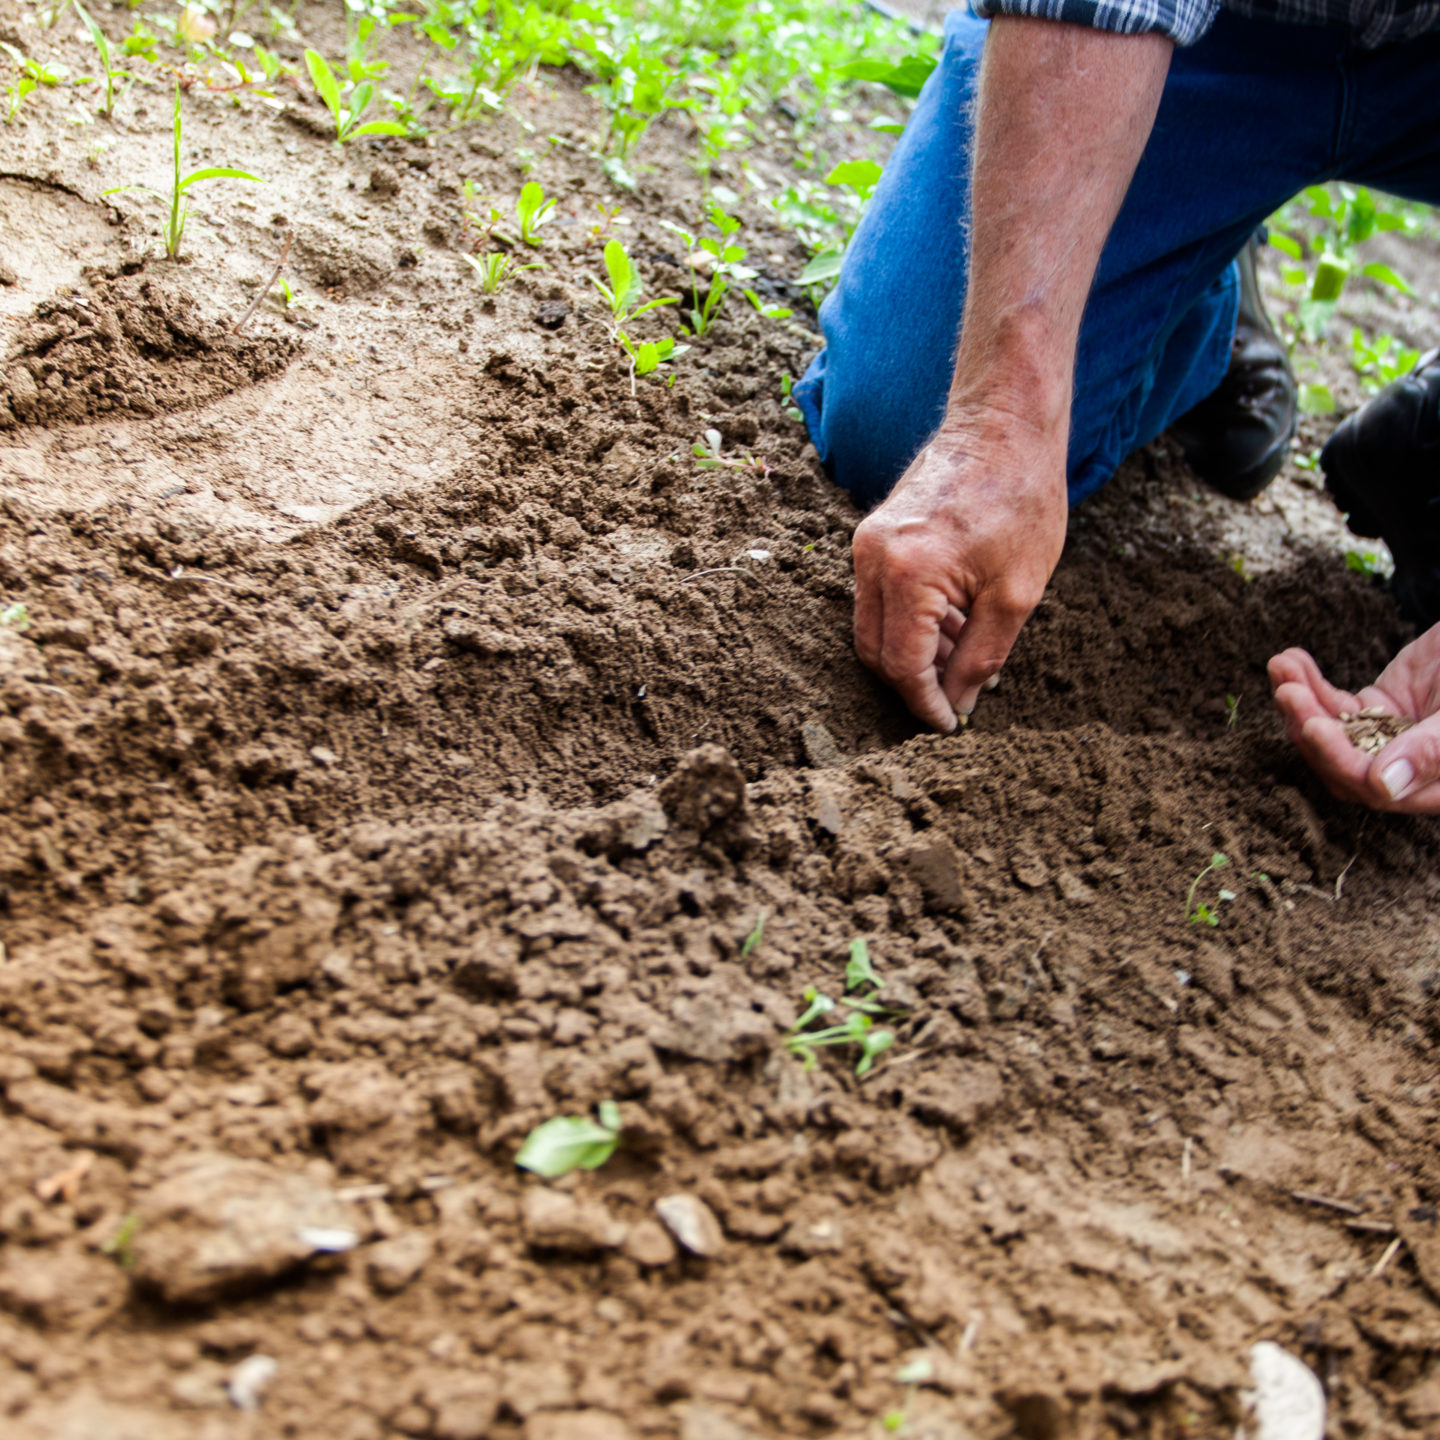 What makes soil, soil? Researchers find hidden clues in DNA